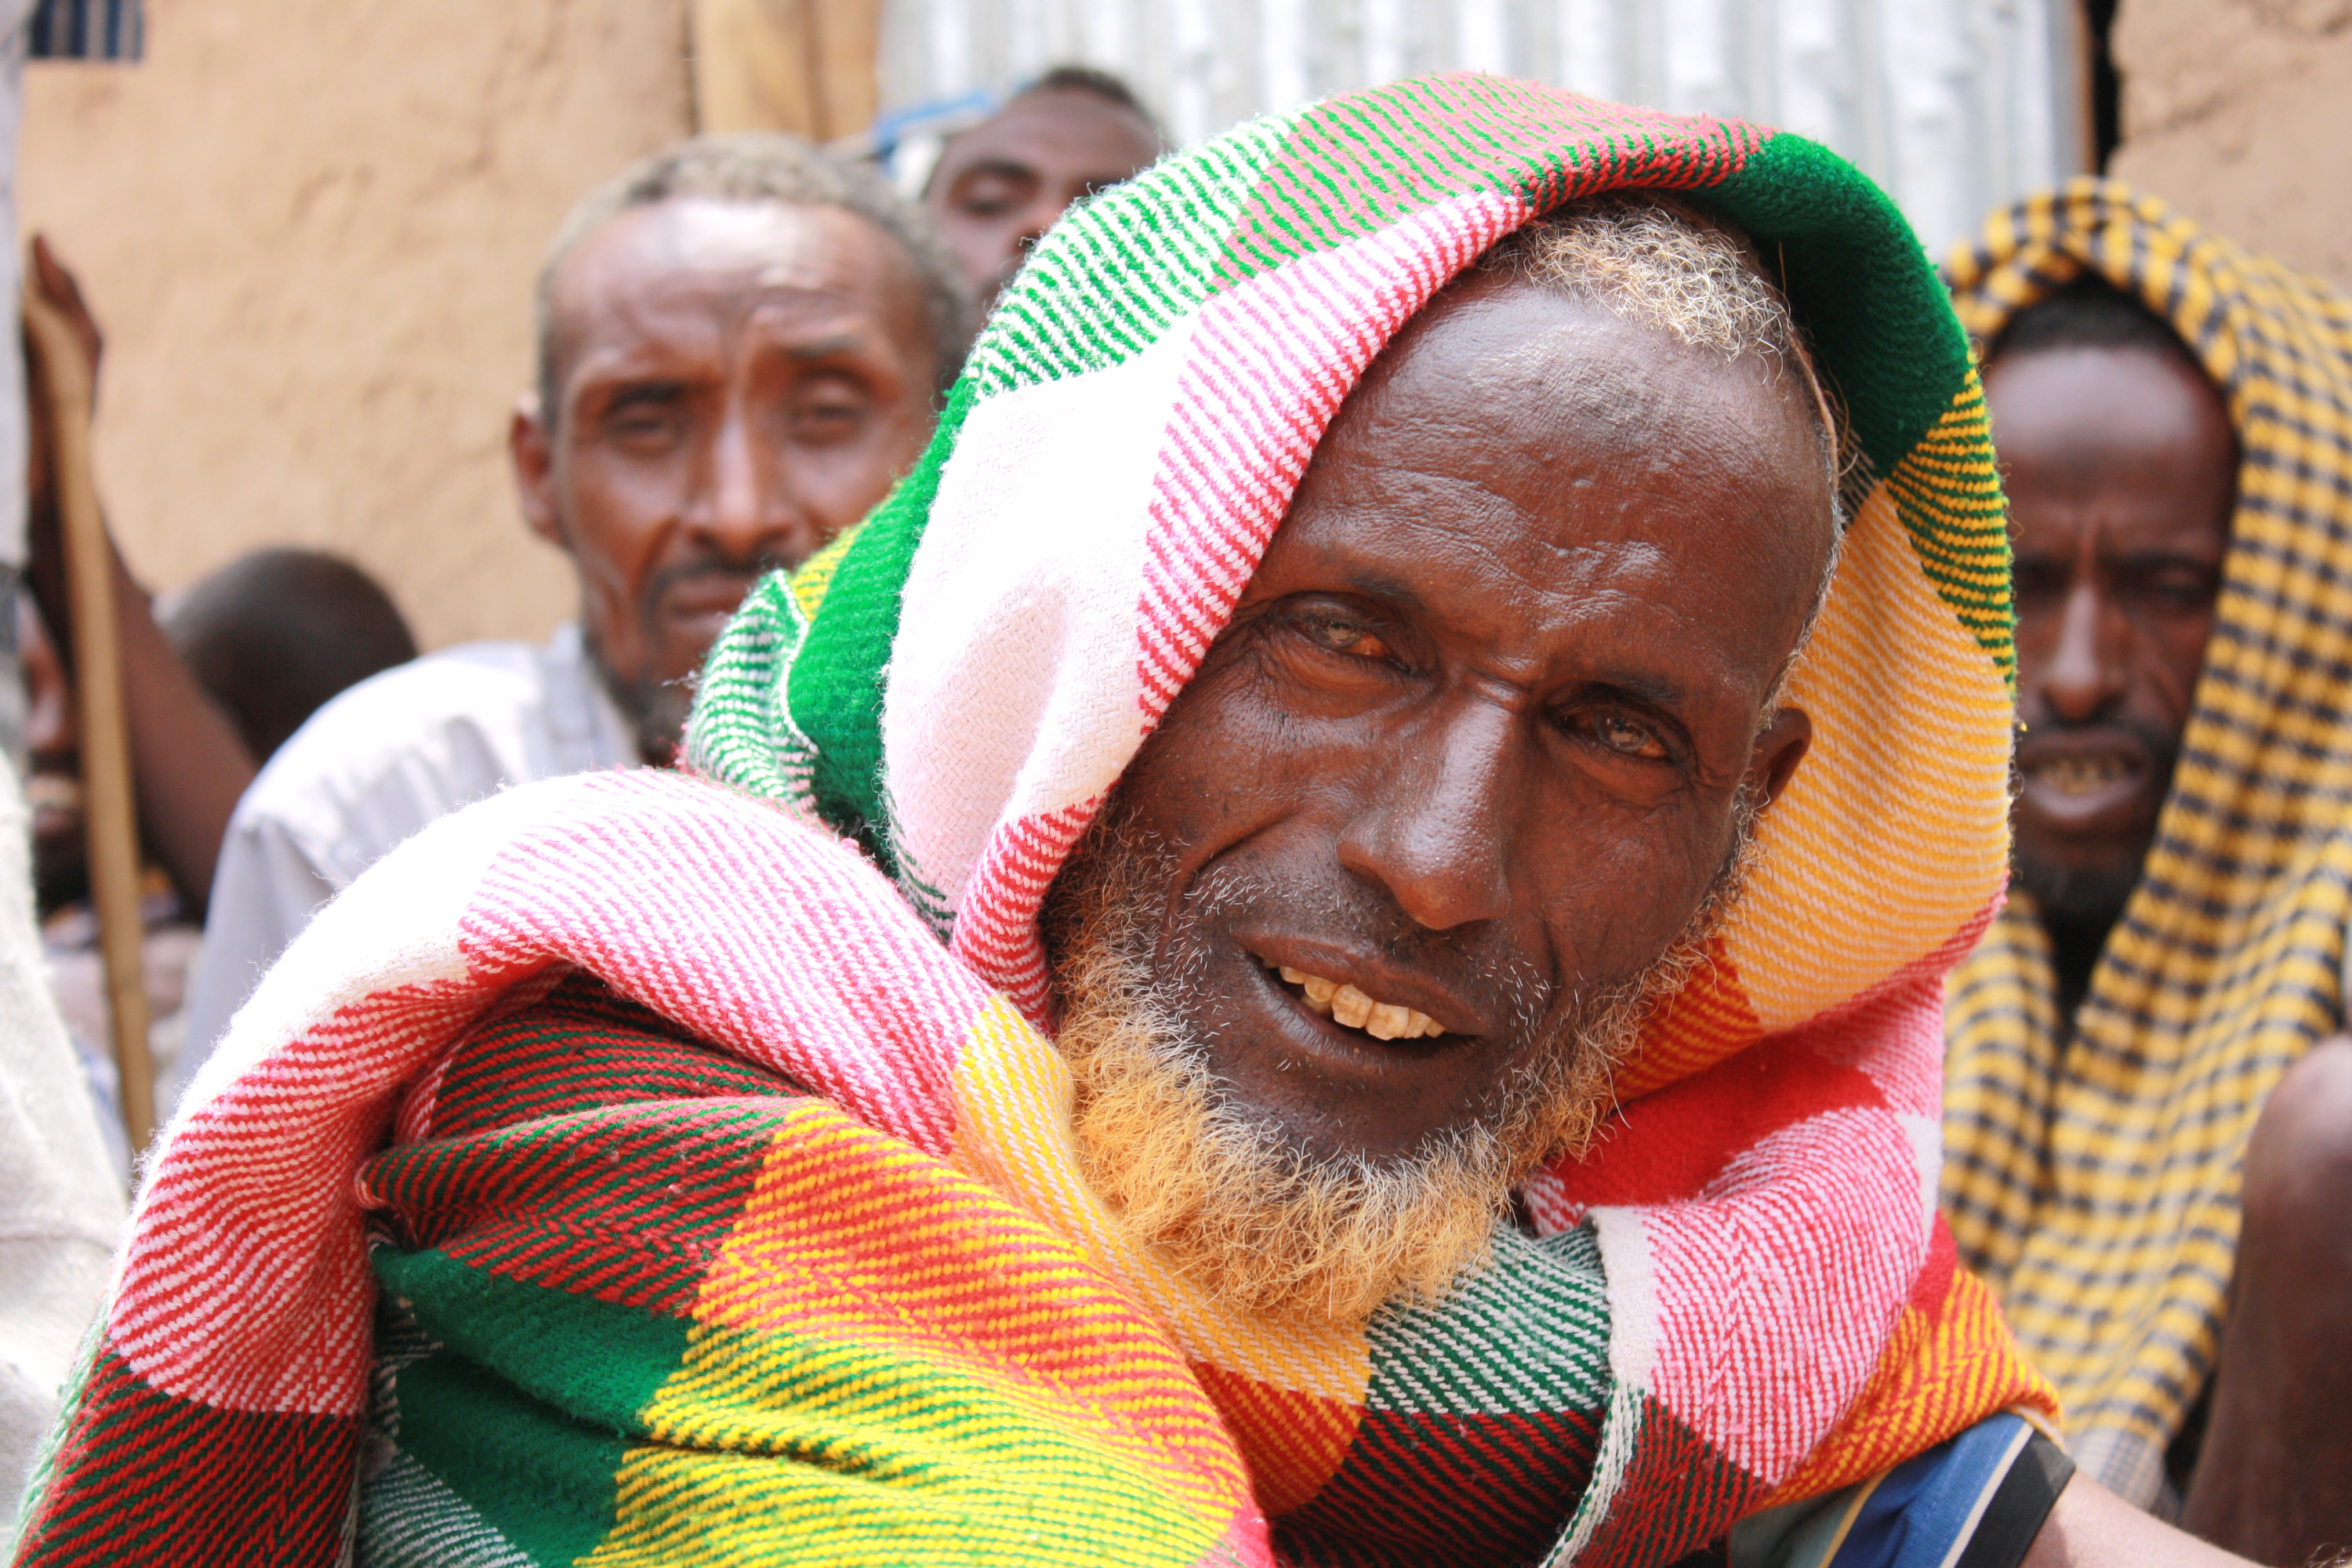 A Pastoralist In Bisle Kebele Shinile Zone Ethiopias Somali Region Says The July